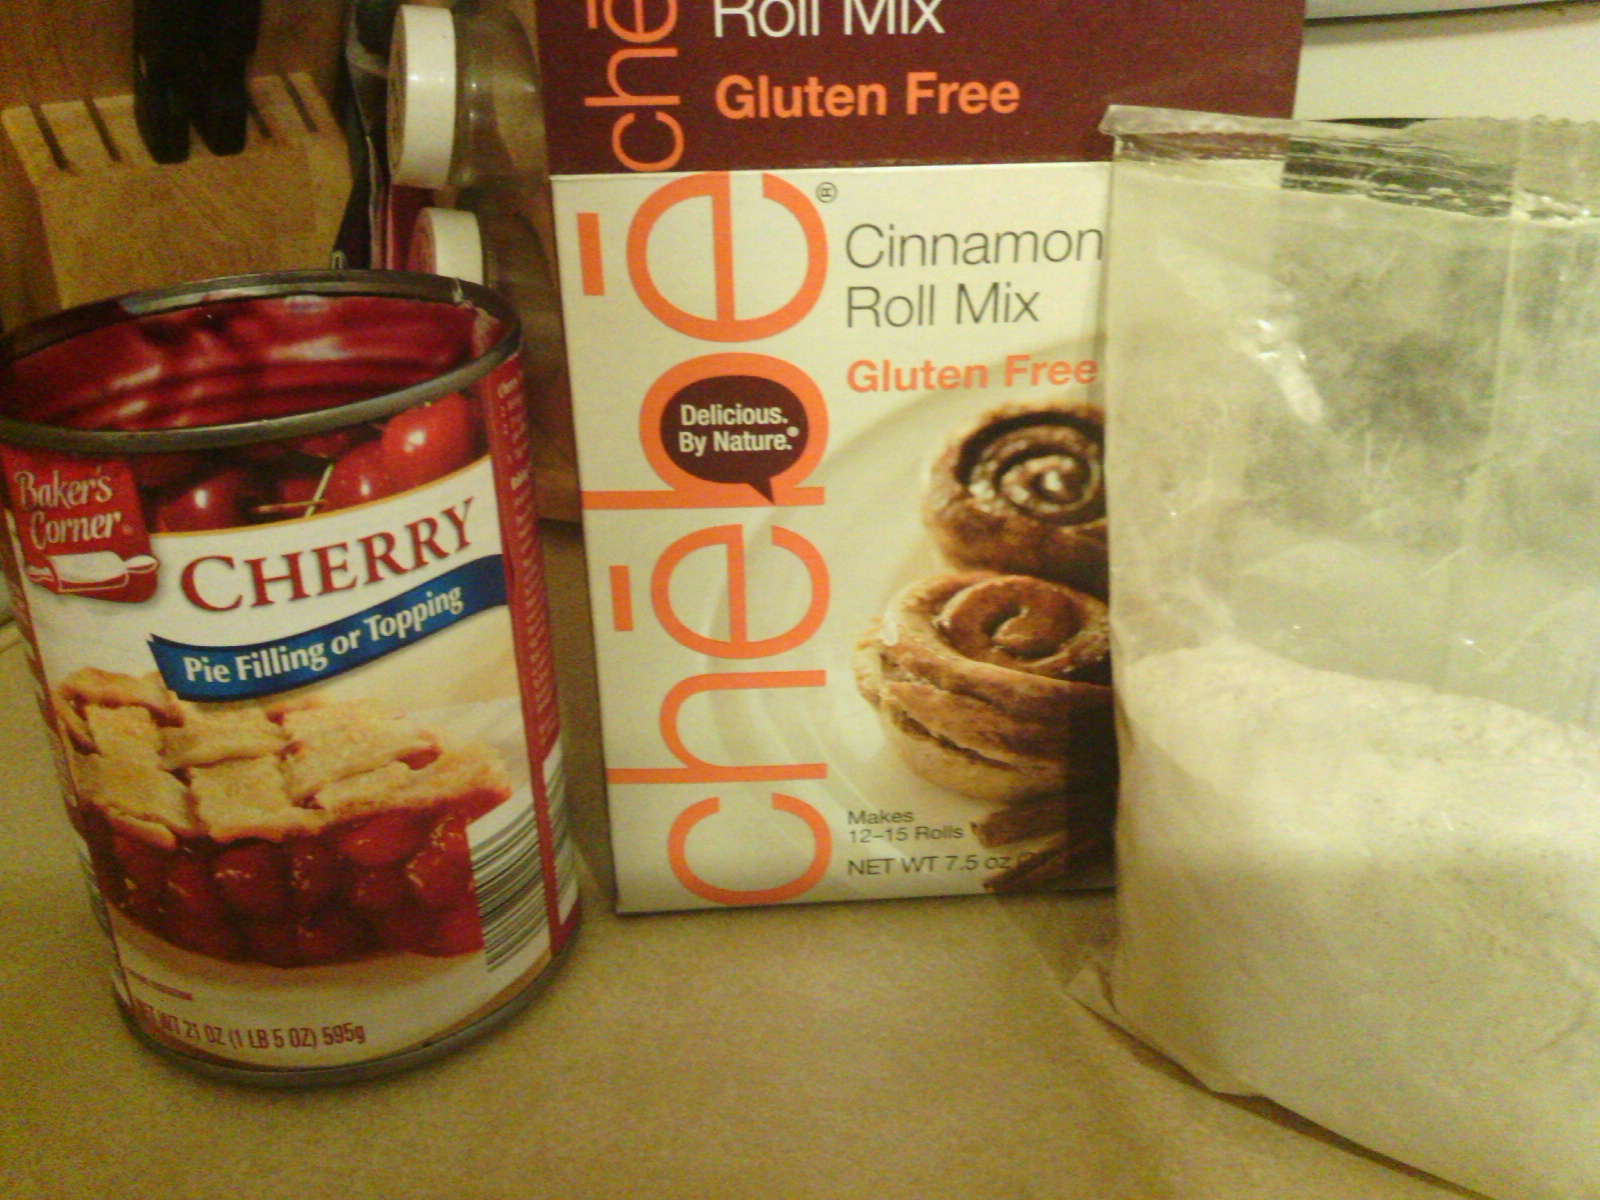 Chebe Cherry Hand Pie Ingredients